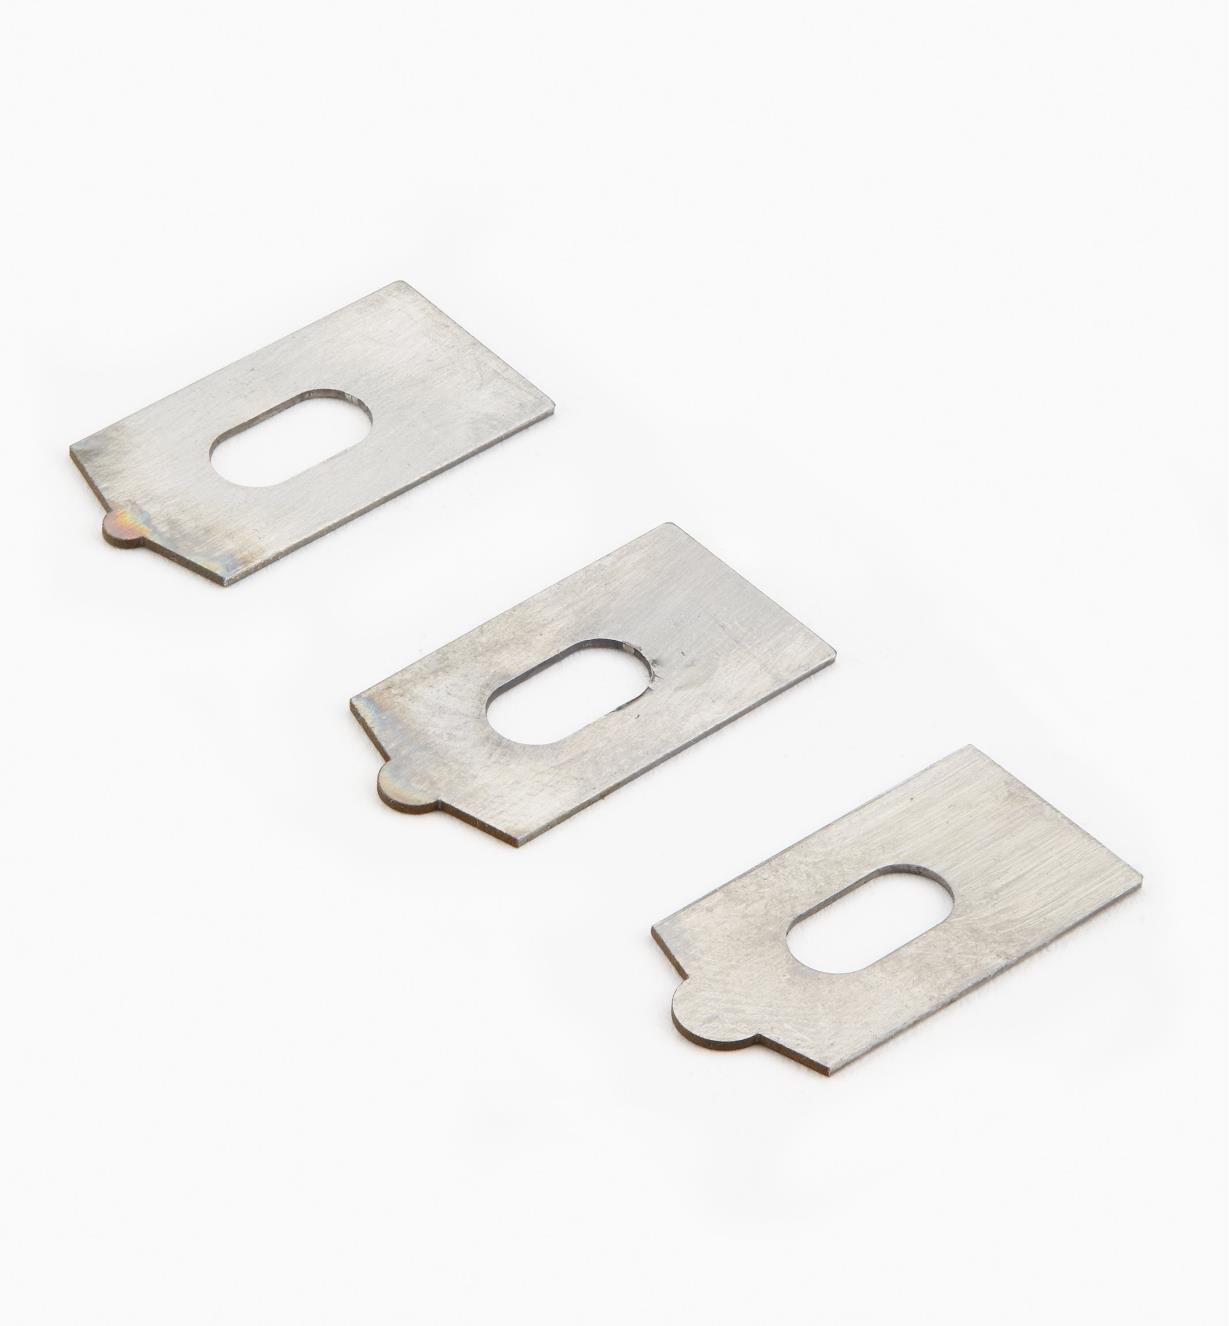 05P0404 - Fluting Cutters, set of 3*